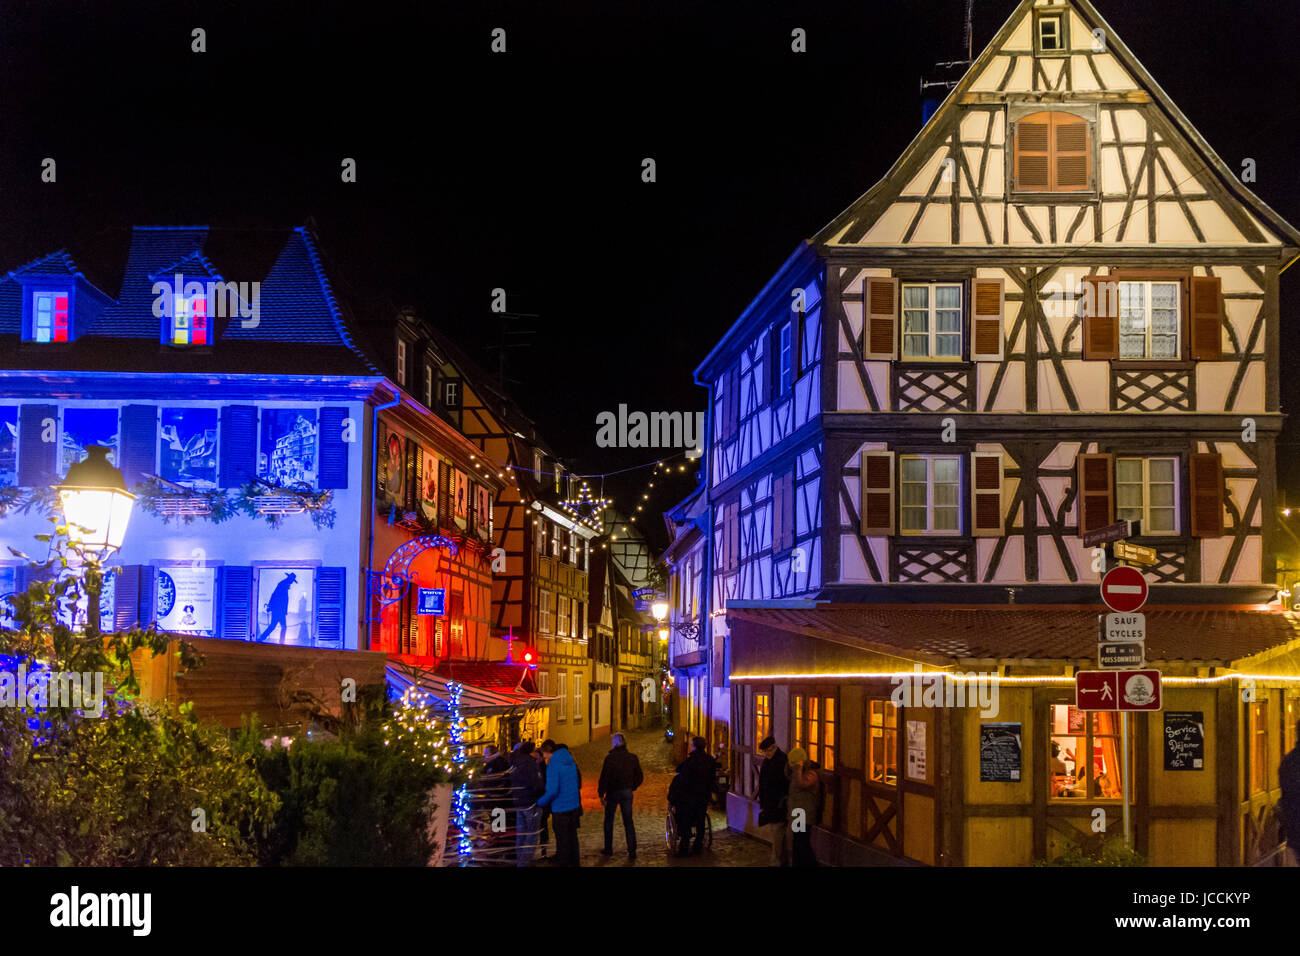 "<a href=""http://de.wikipedia.org/wiki/Colmar"" target="" blank"">Colmar</a>, Alsace, France Stock Photo"